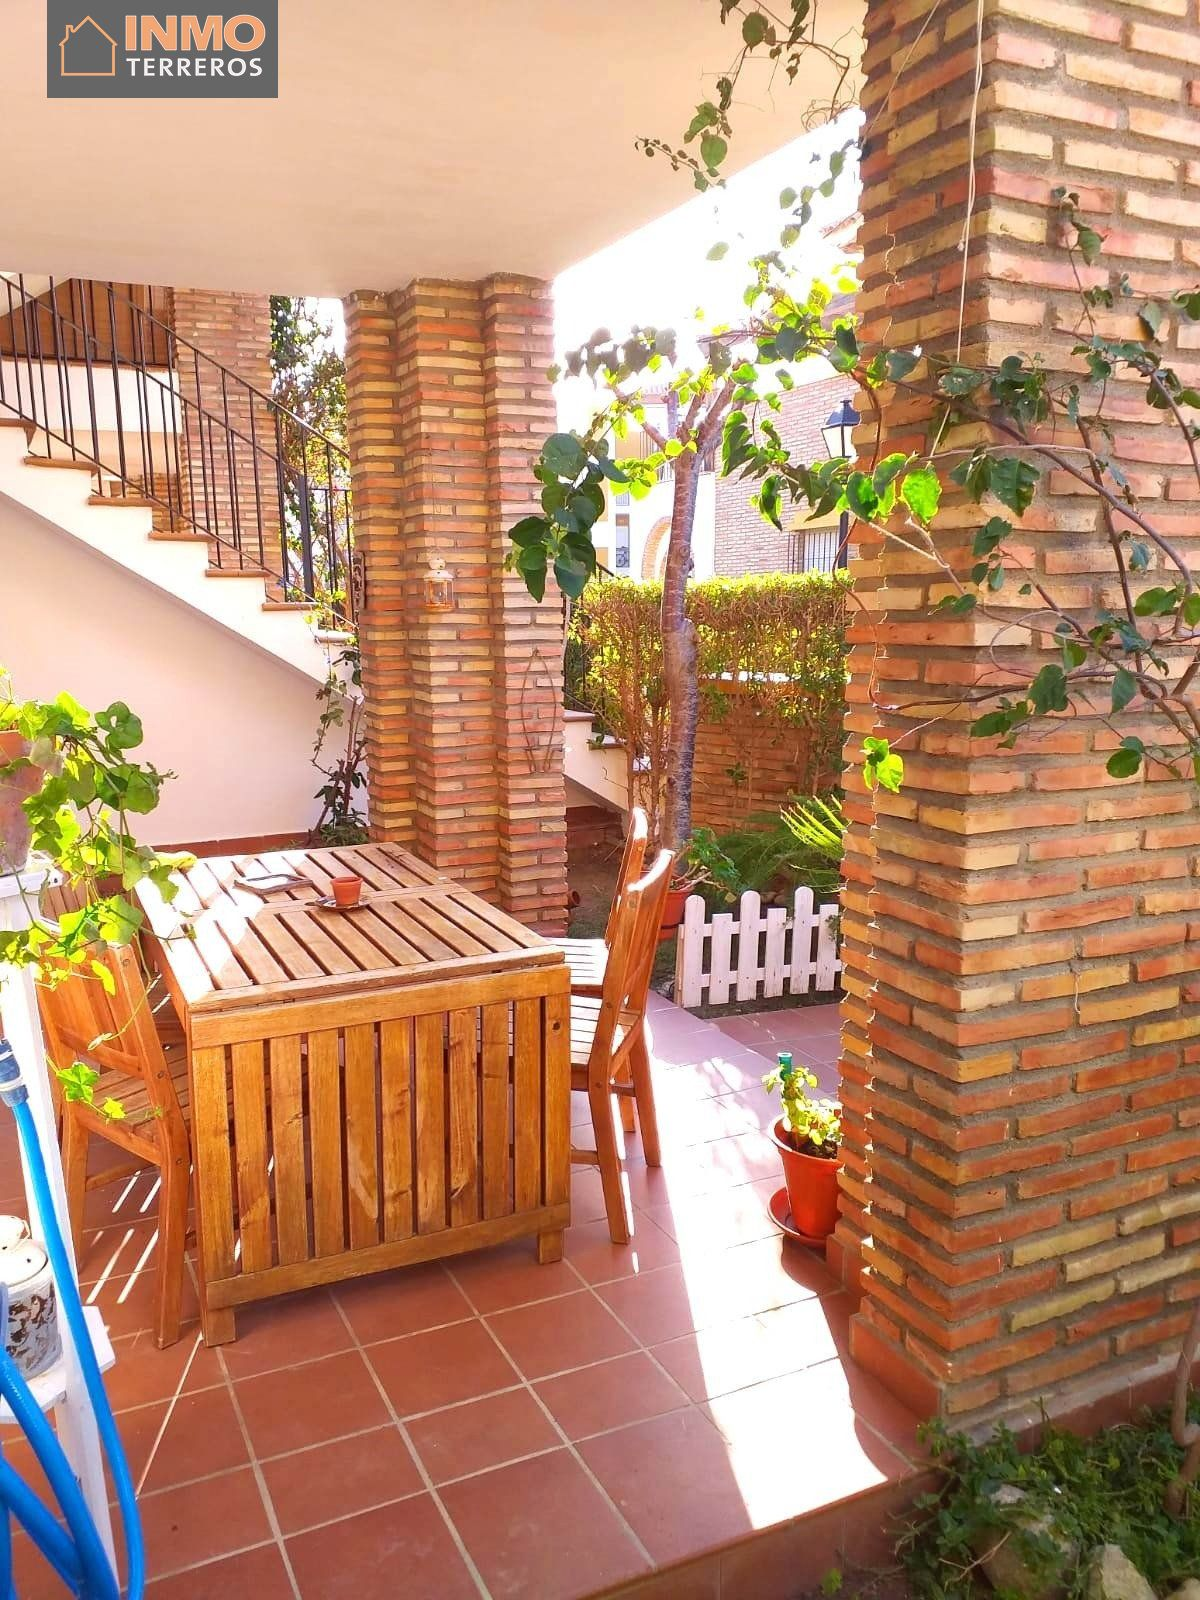 Apartment for sale in Vera Playa - El coto de vera, Vera